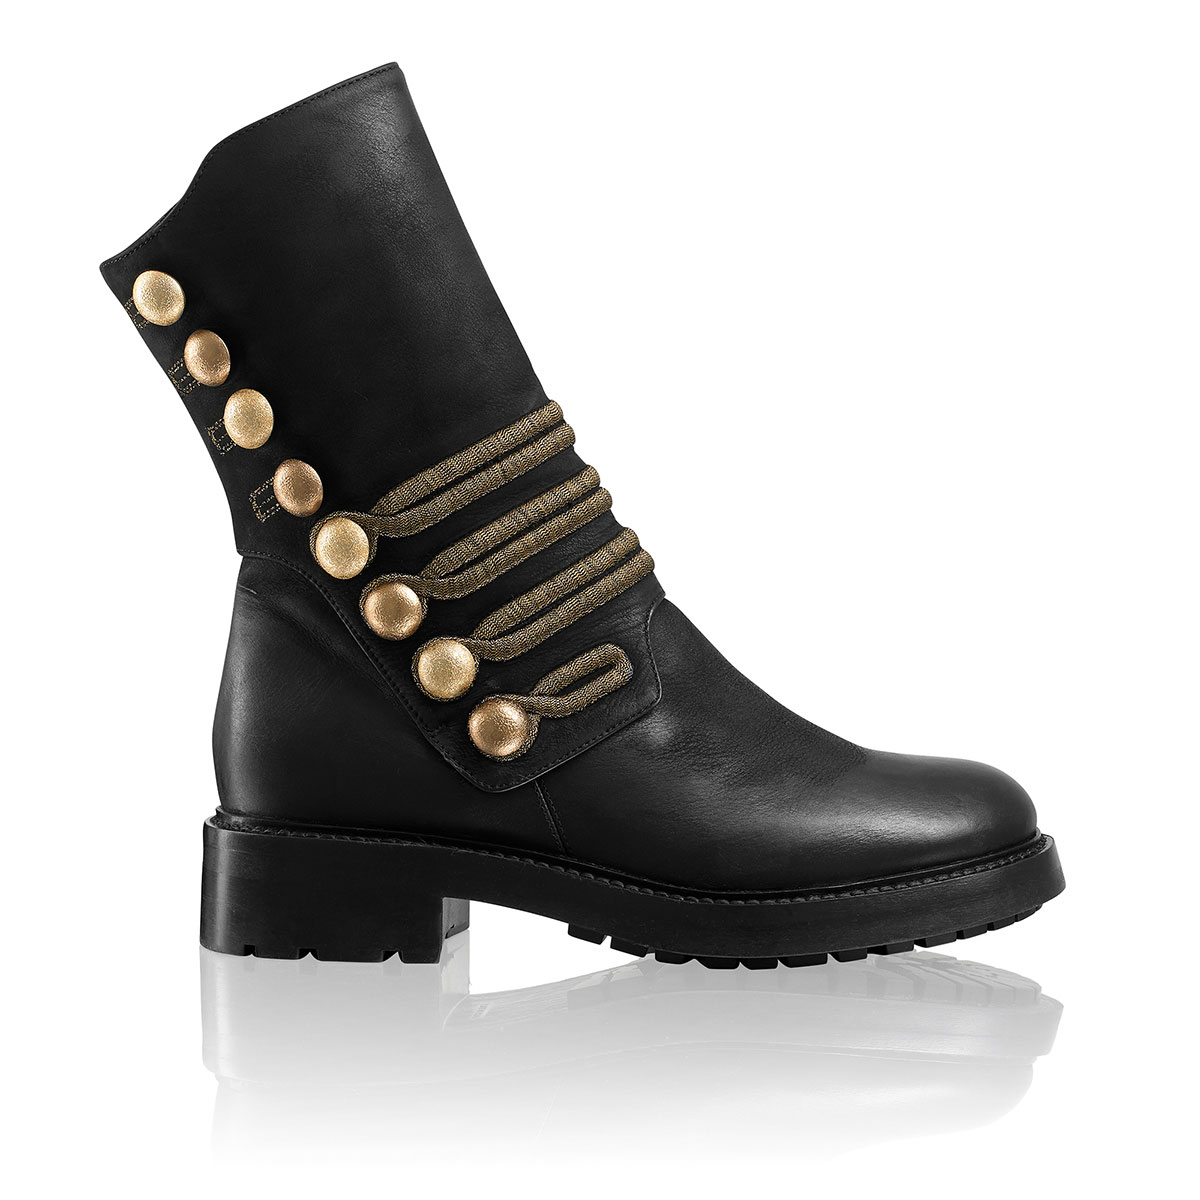 Russell And Bromley CRAZYFROG Military Biker Boot